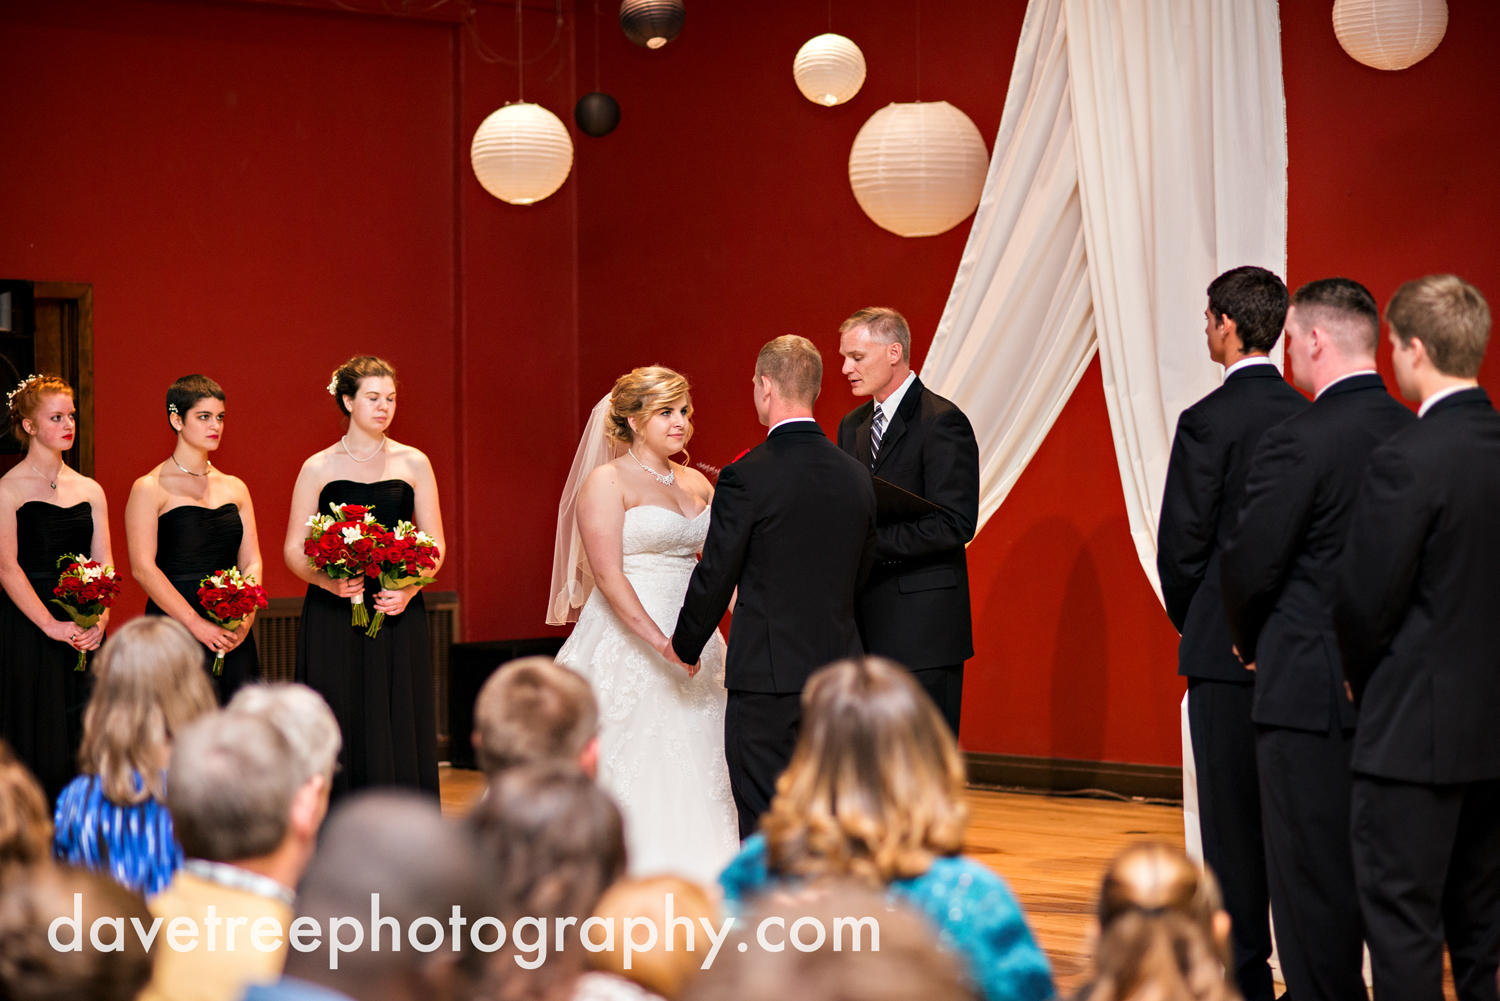 holland_wedding_photographer_38.jpg